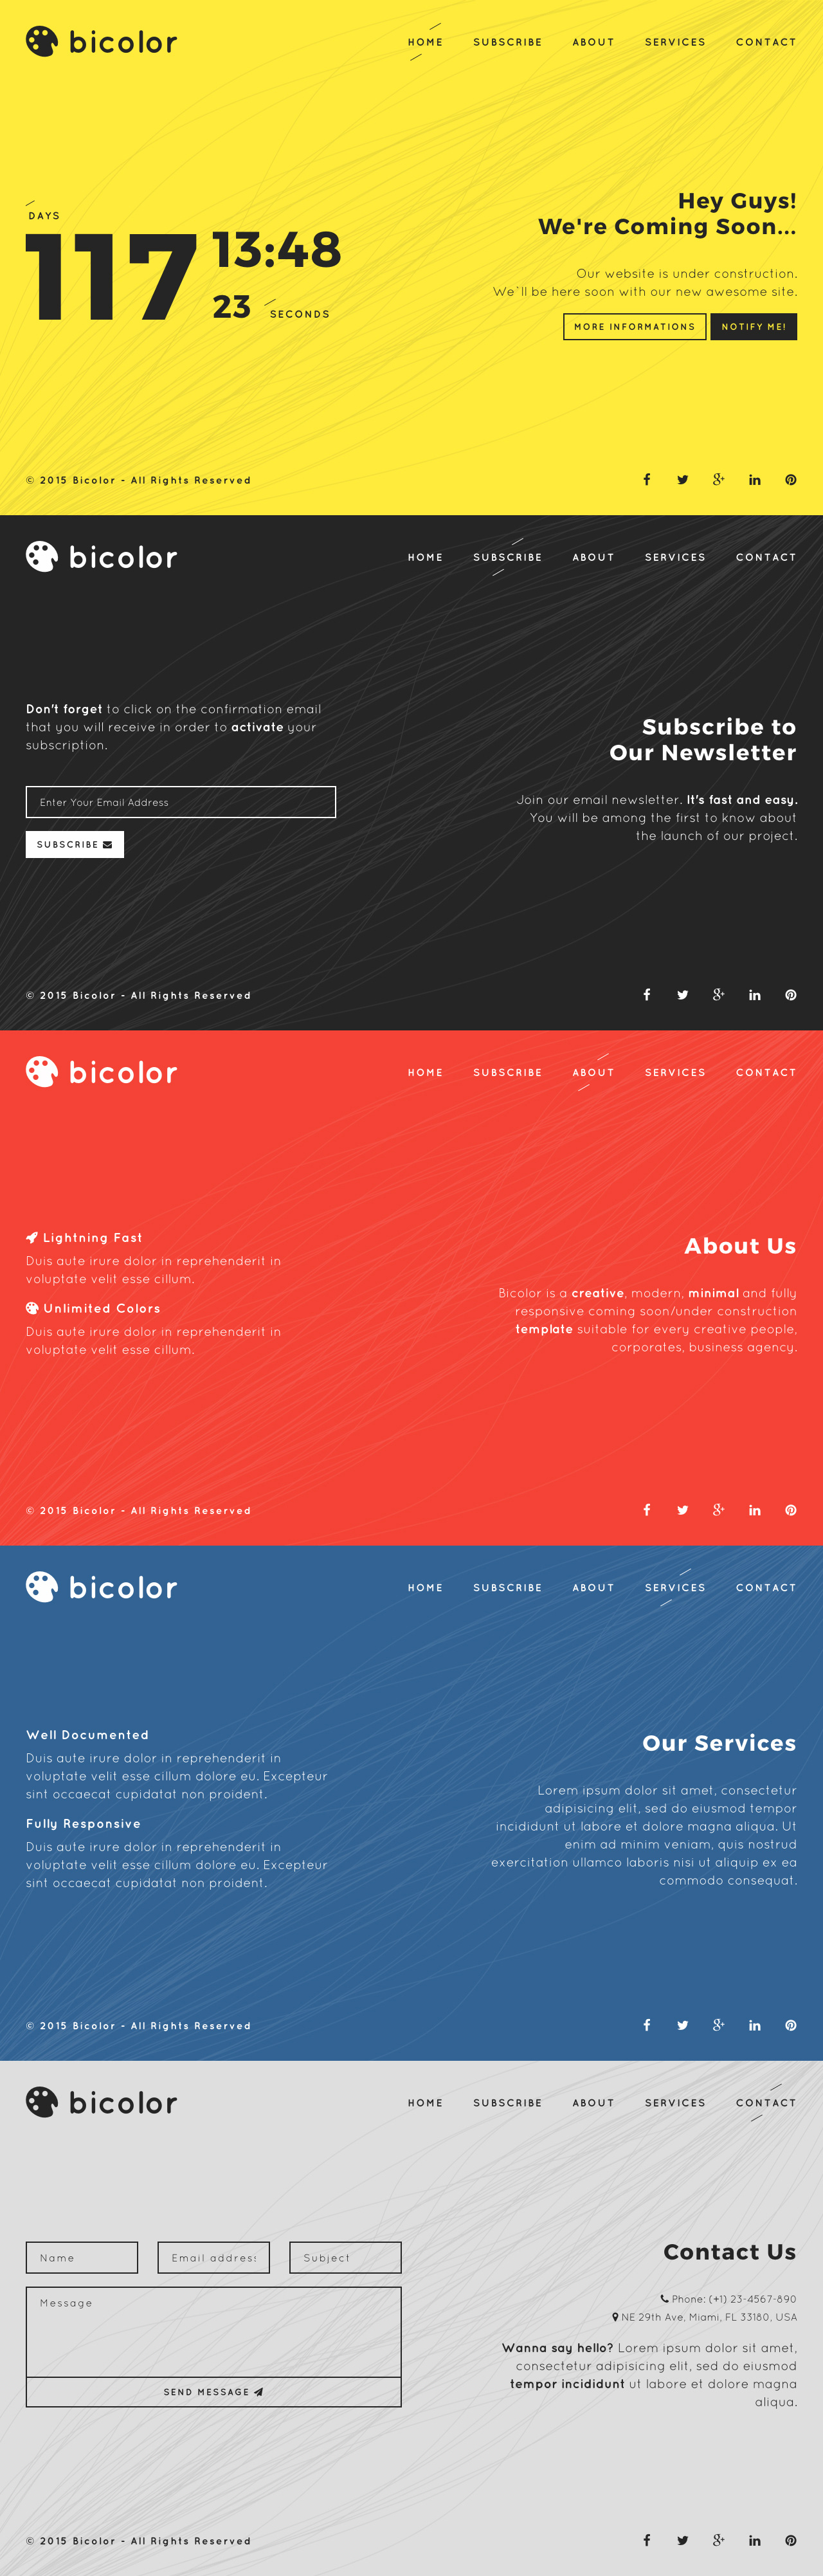 Bicolor Website Screenshot